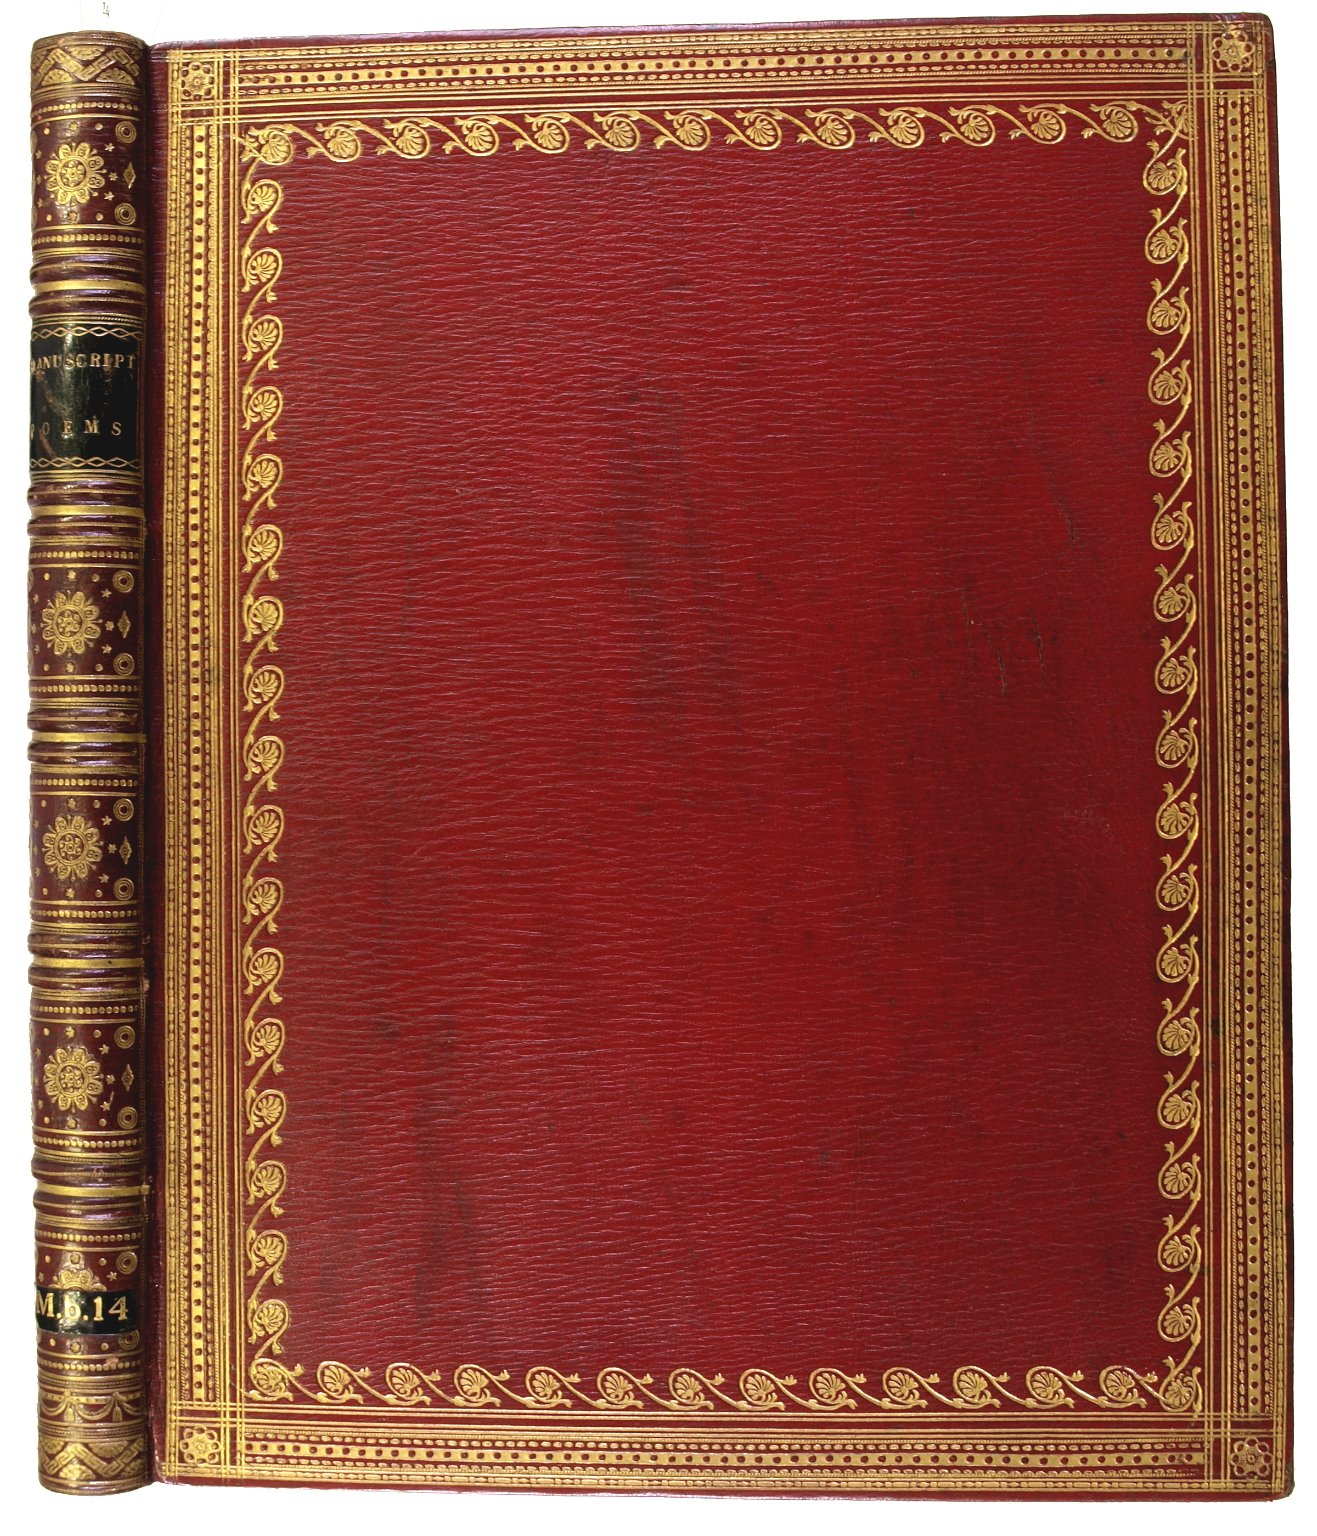 Front cover and spine, M.b. 14.